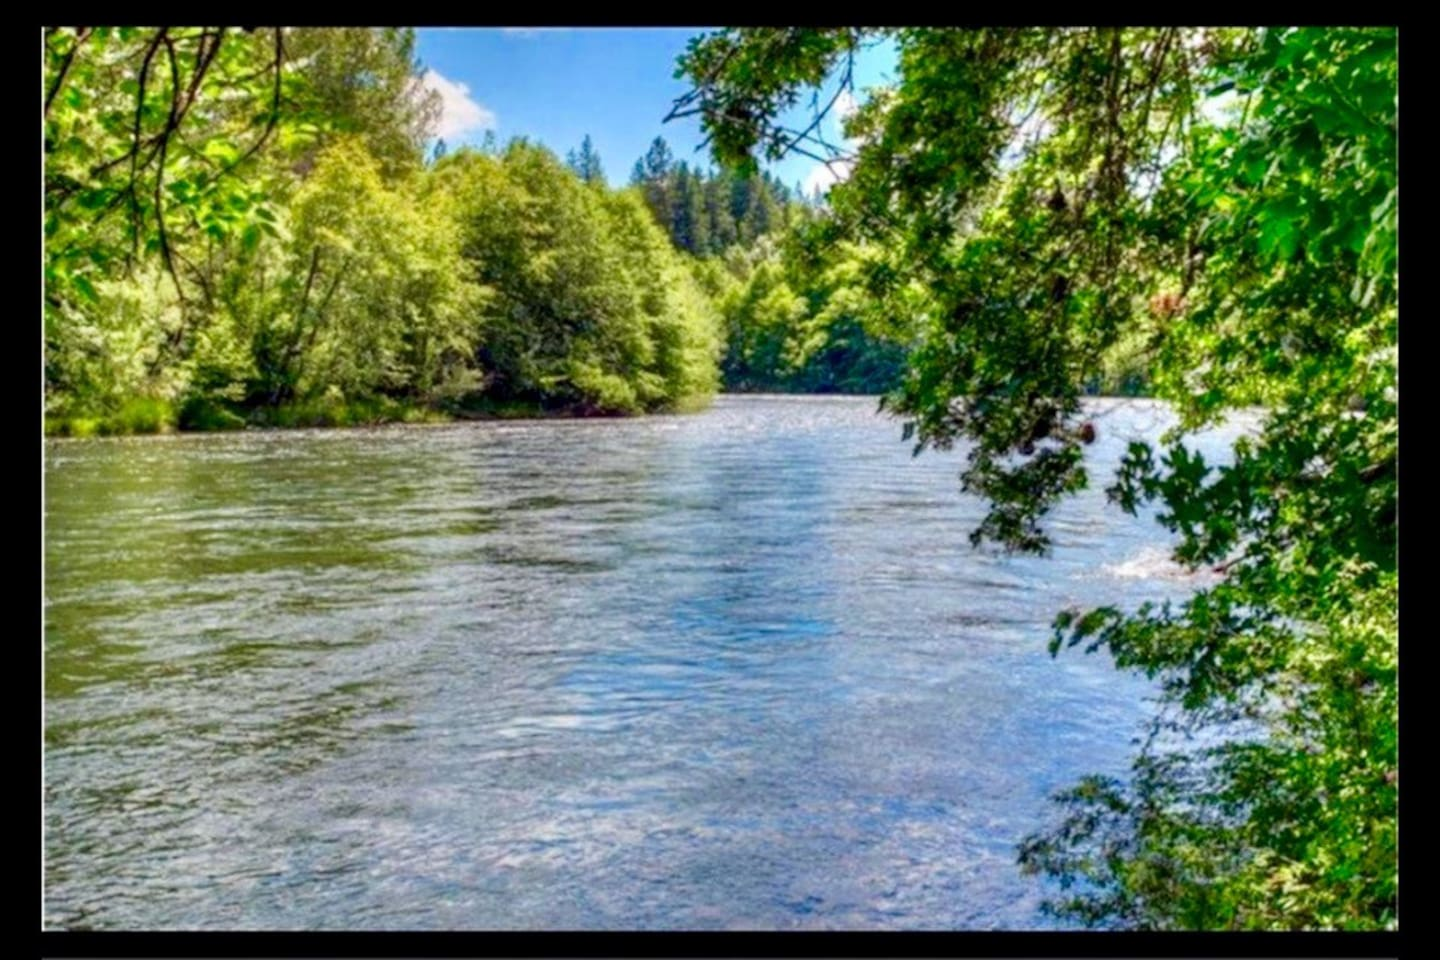 Picturesque isn't enough to describe the Rogue River this isn't a random shot, it's your down river view.